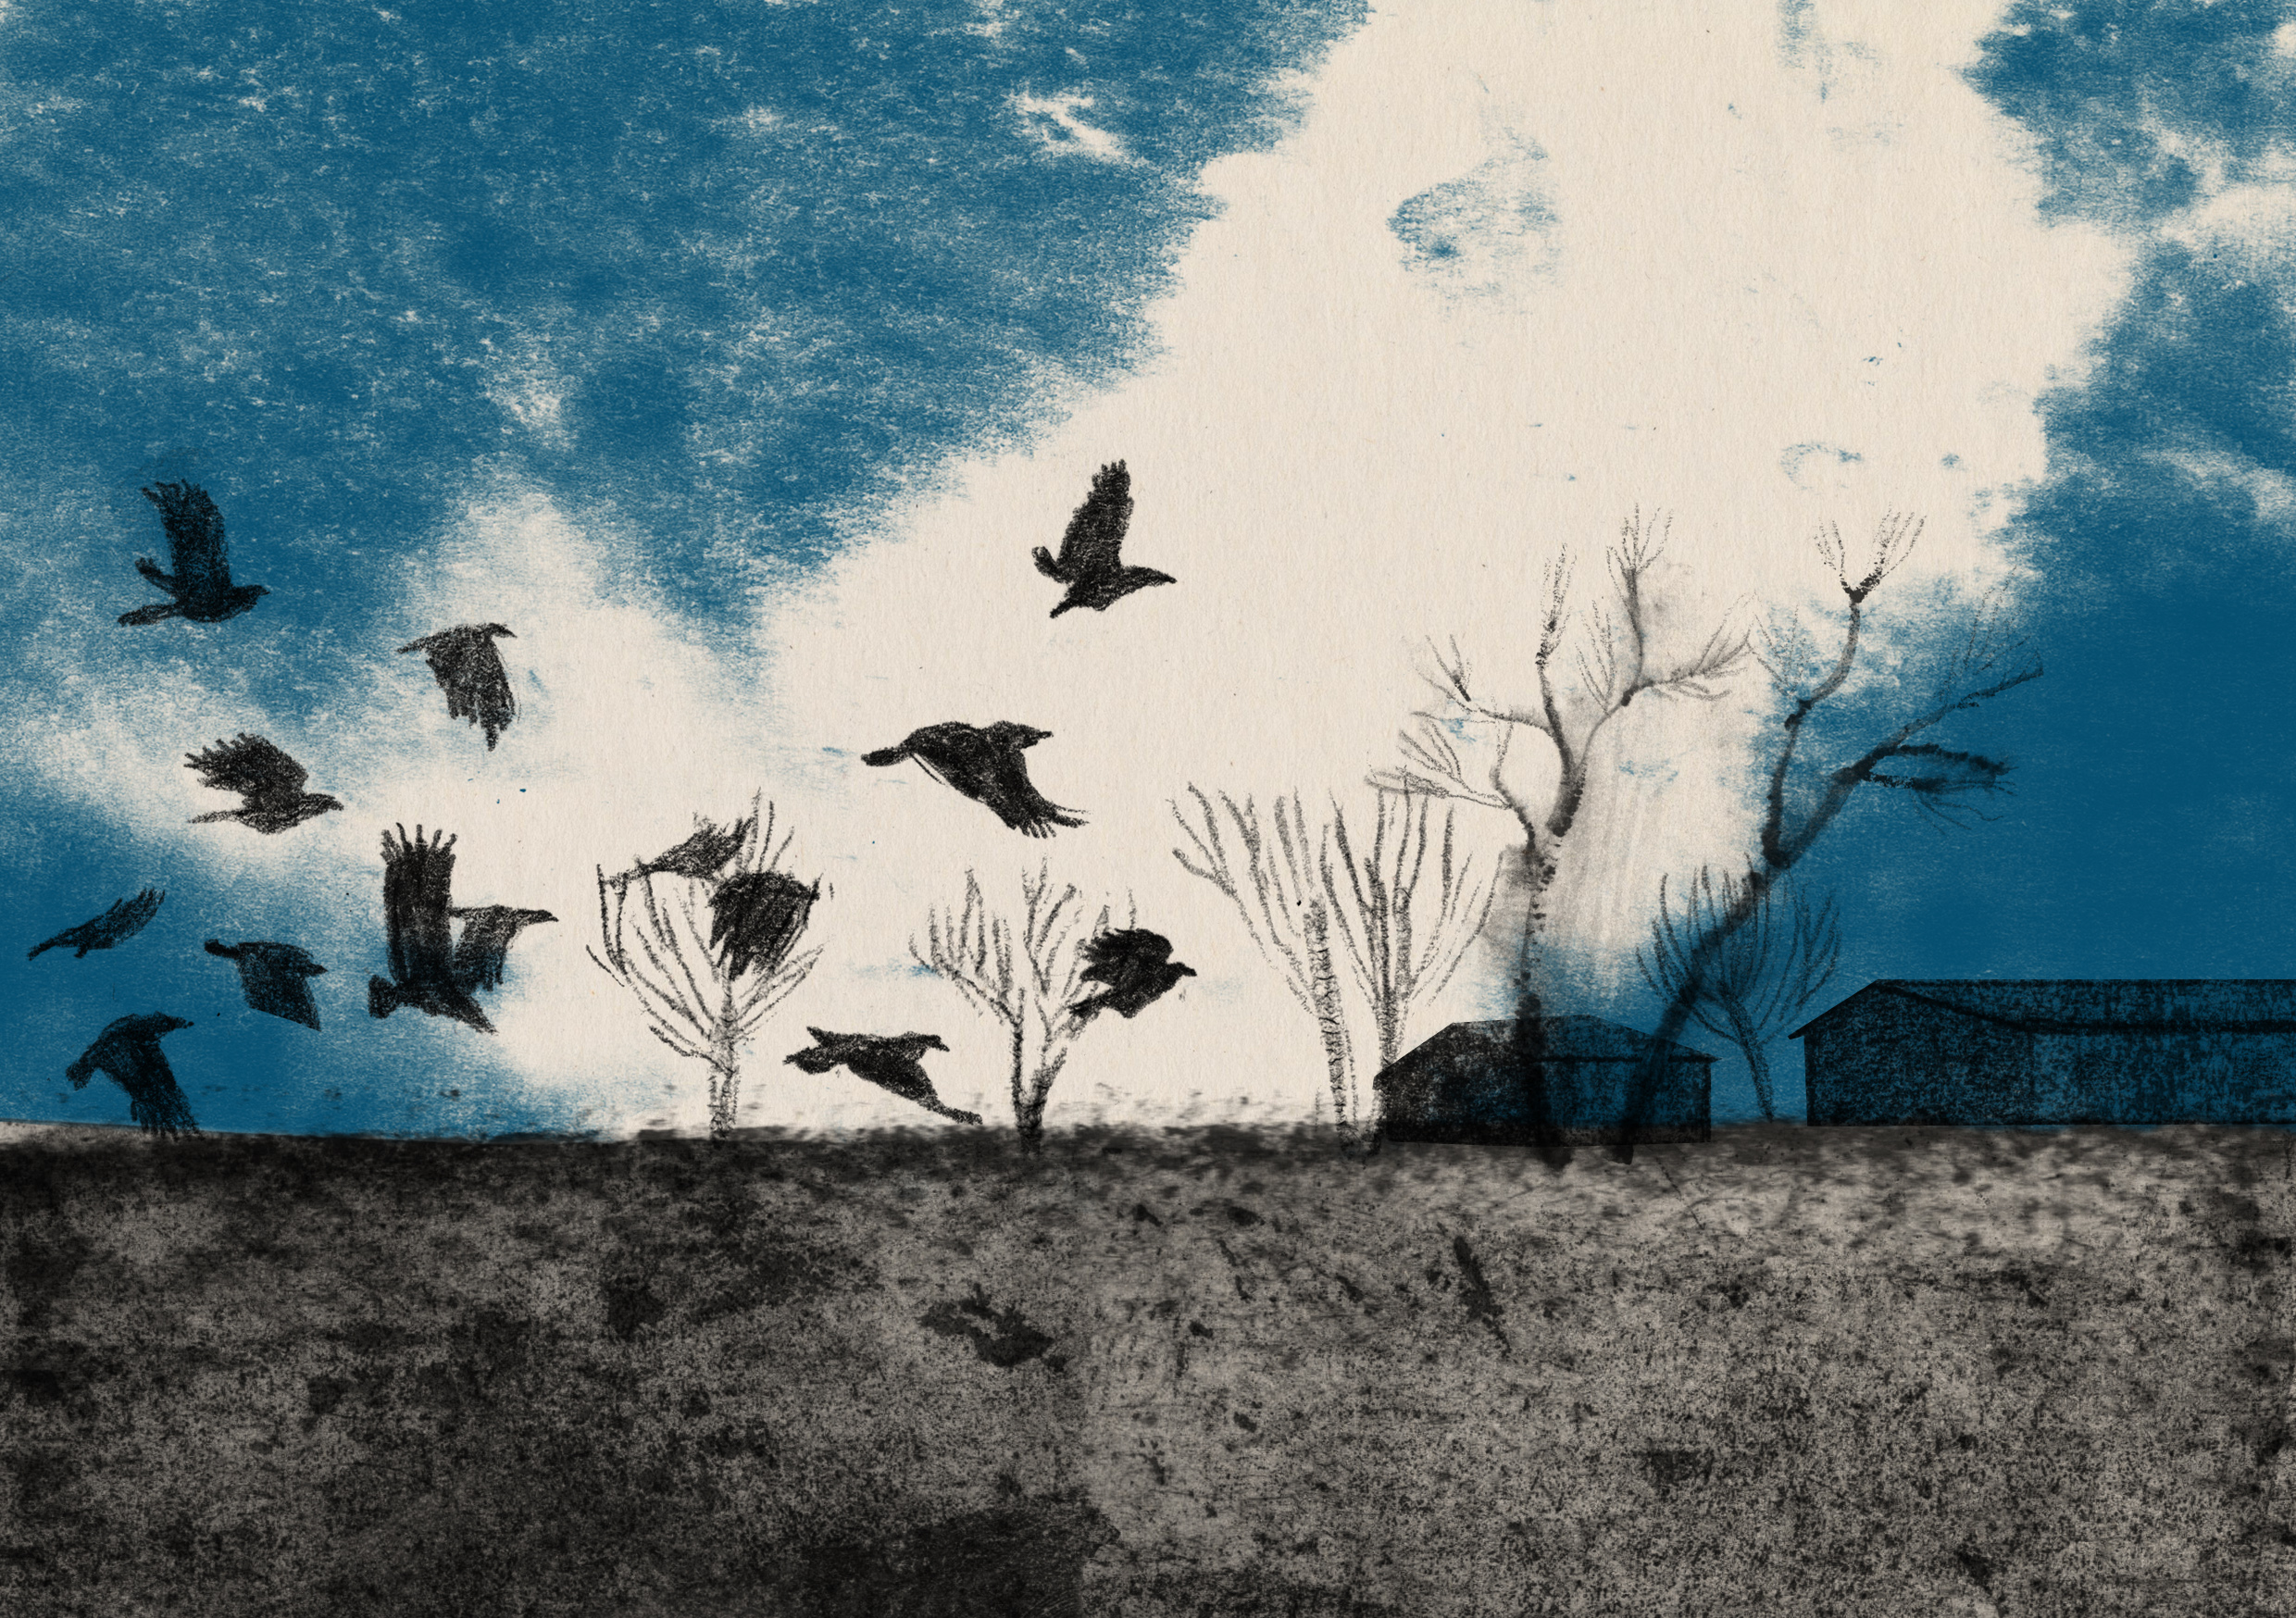 Crows' flight by Iro Tsavala, from Yappo.